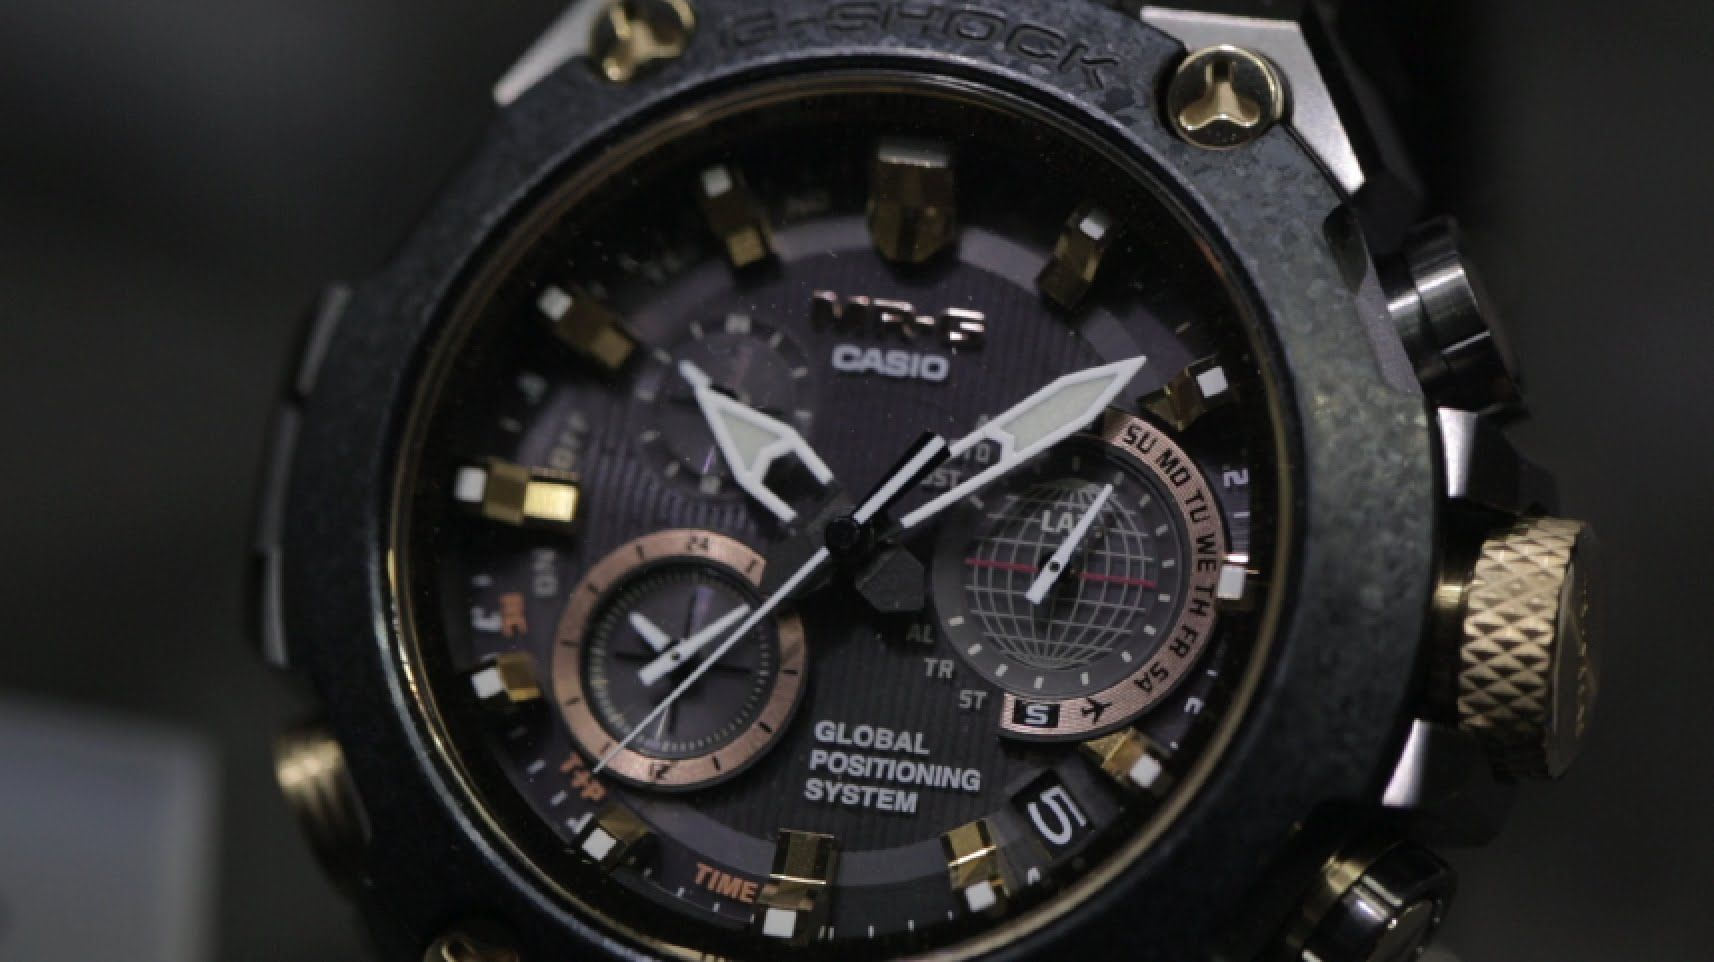 2015 Casio G-Shock Watch Collection - BASELWORLD